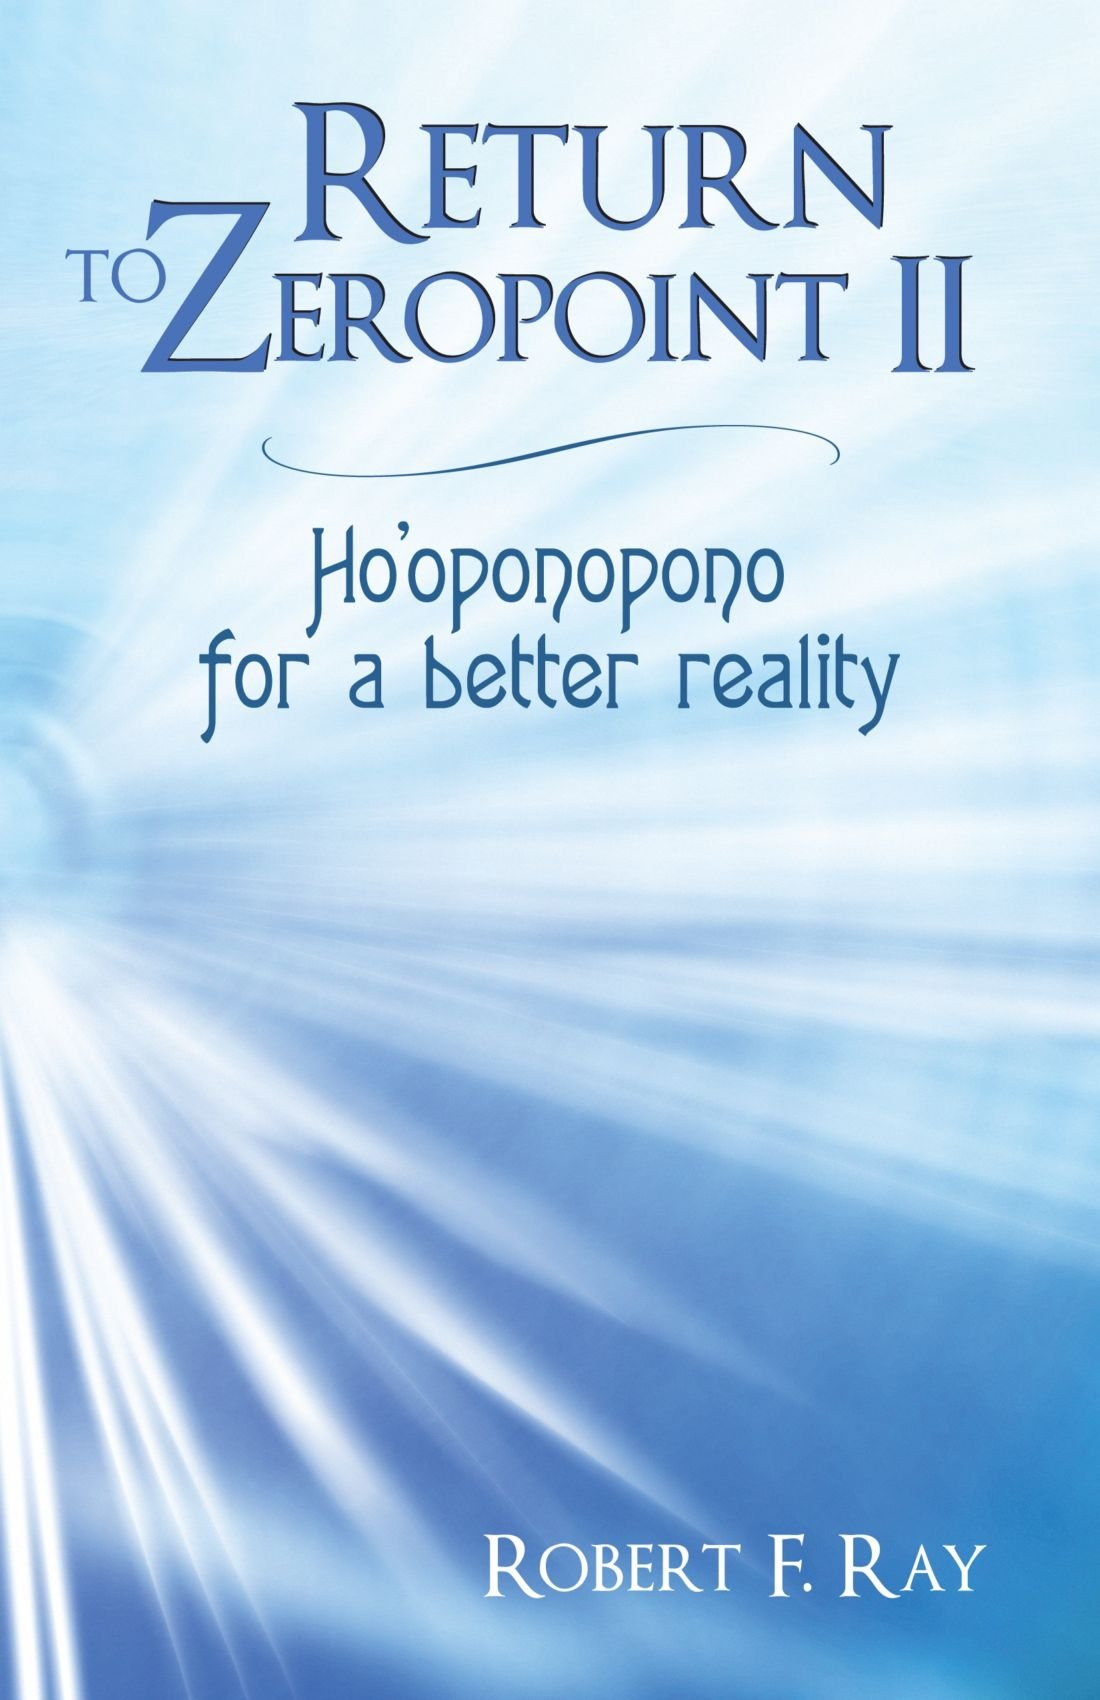 Download Return to Zeropoint II: Ho'oponopono for a Better Reality PDF